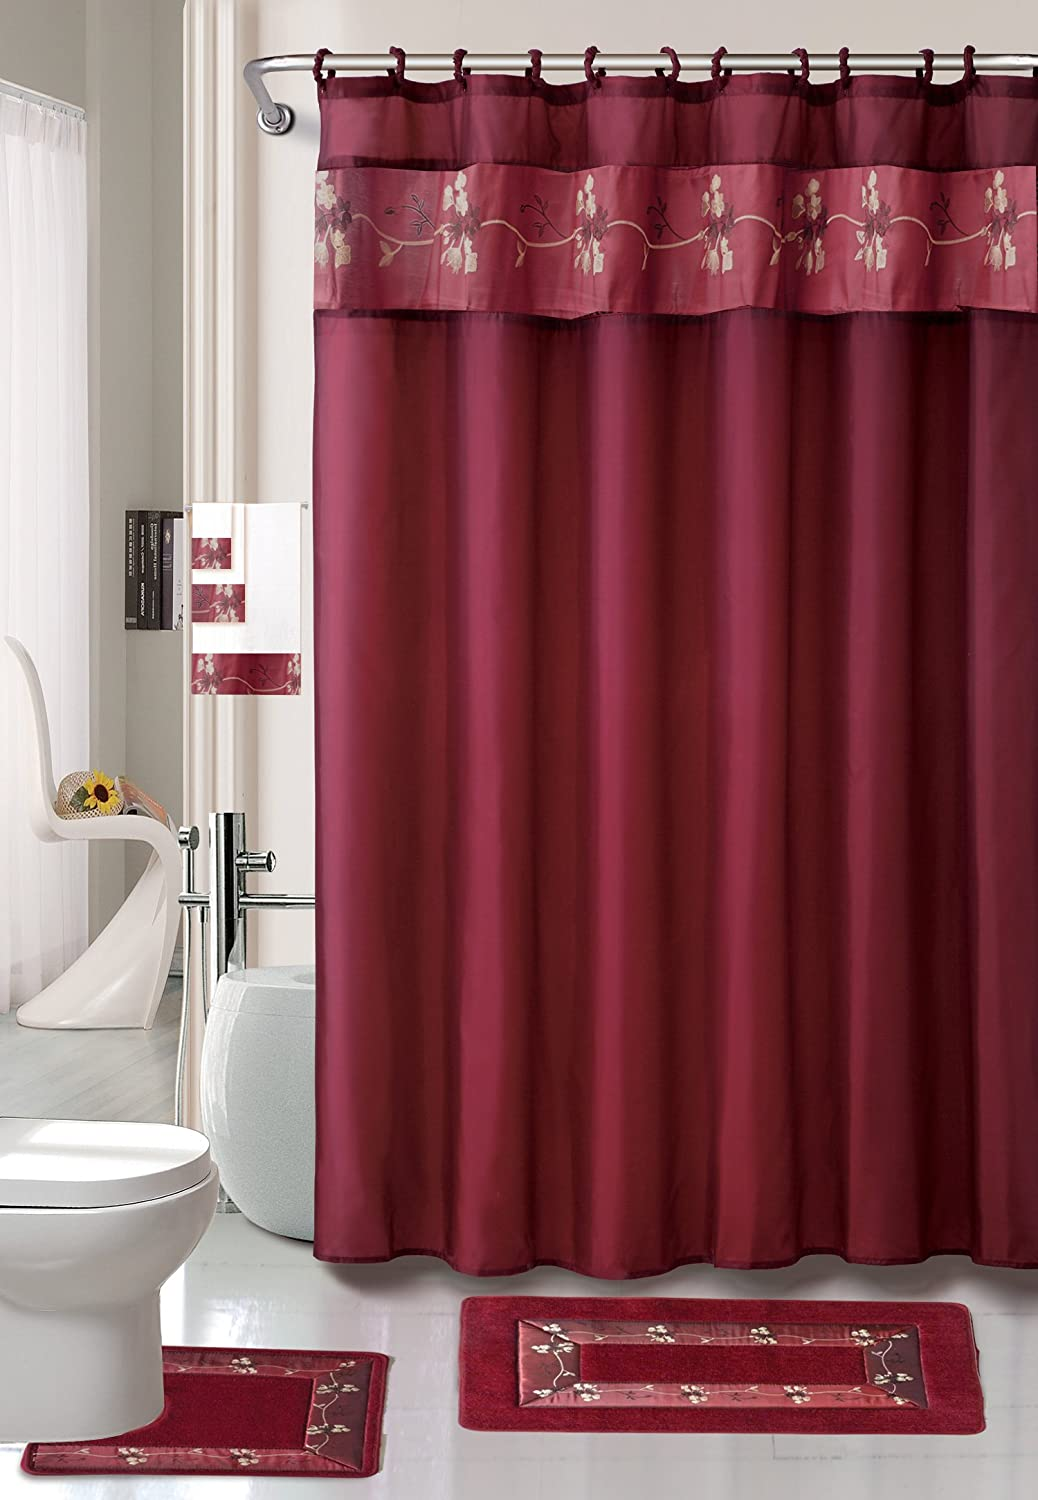 amazoncom burgundy flower 18 piece bathroom set 2 rugsmats 1 fabric shower curtain 12 fabric covered rings 3 pc decorative towel set home kitchen - Bathroom Sets